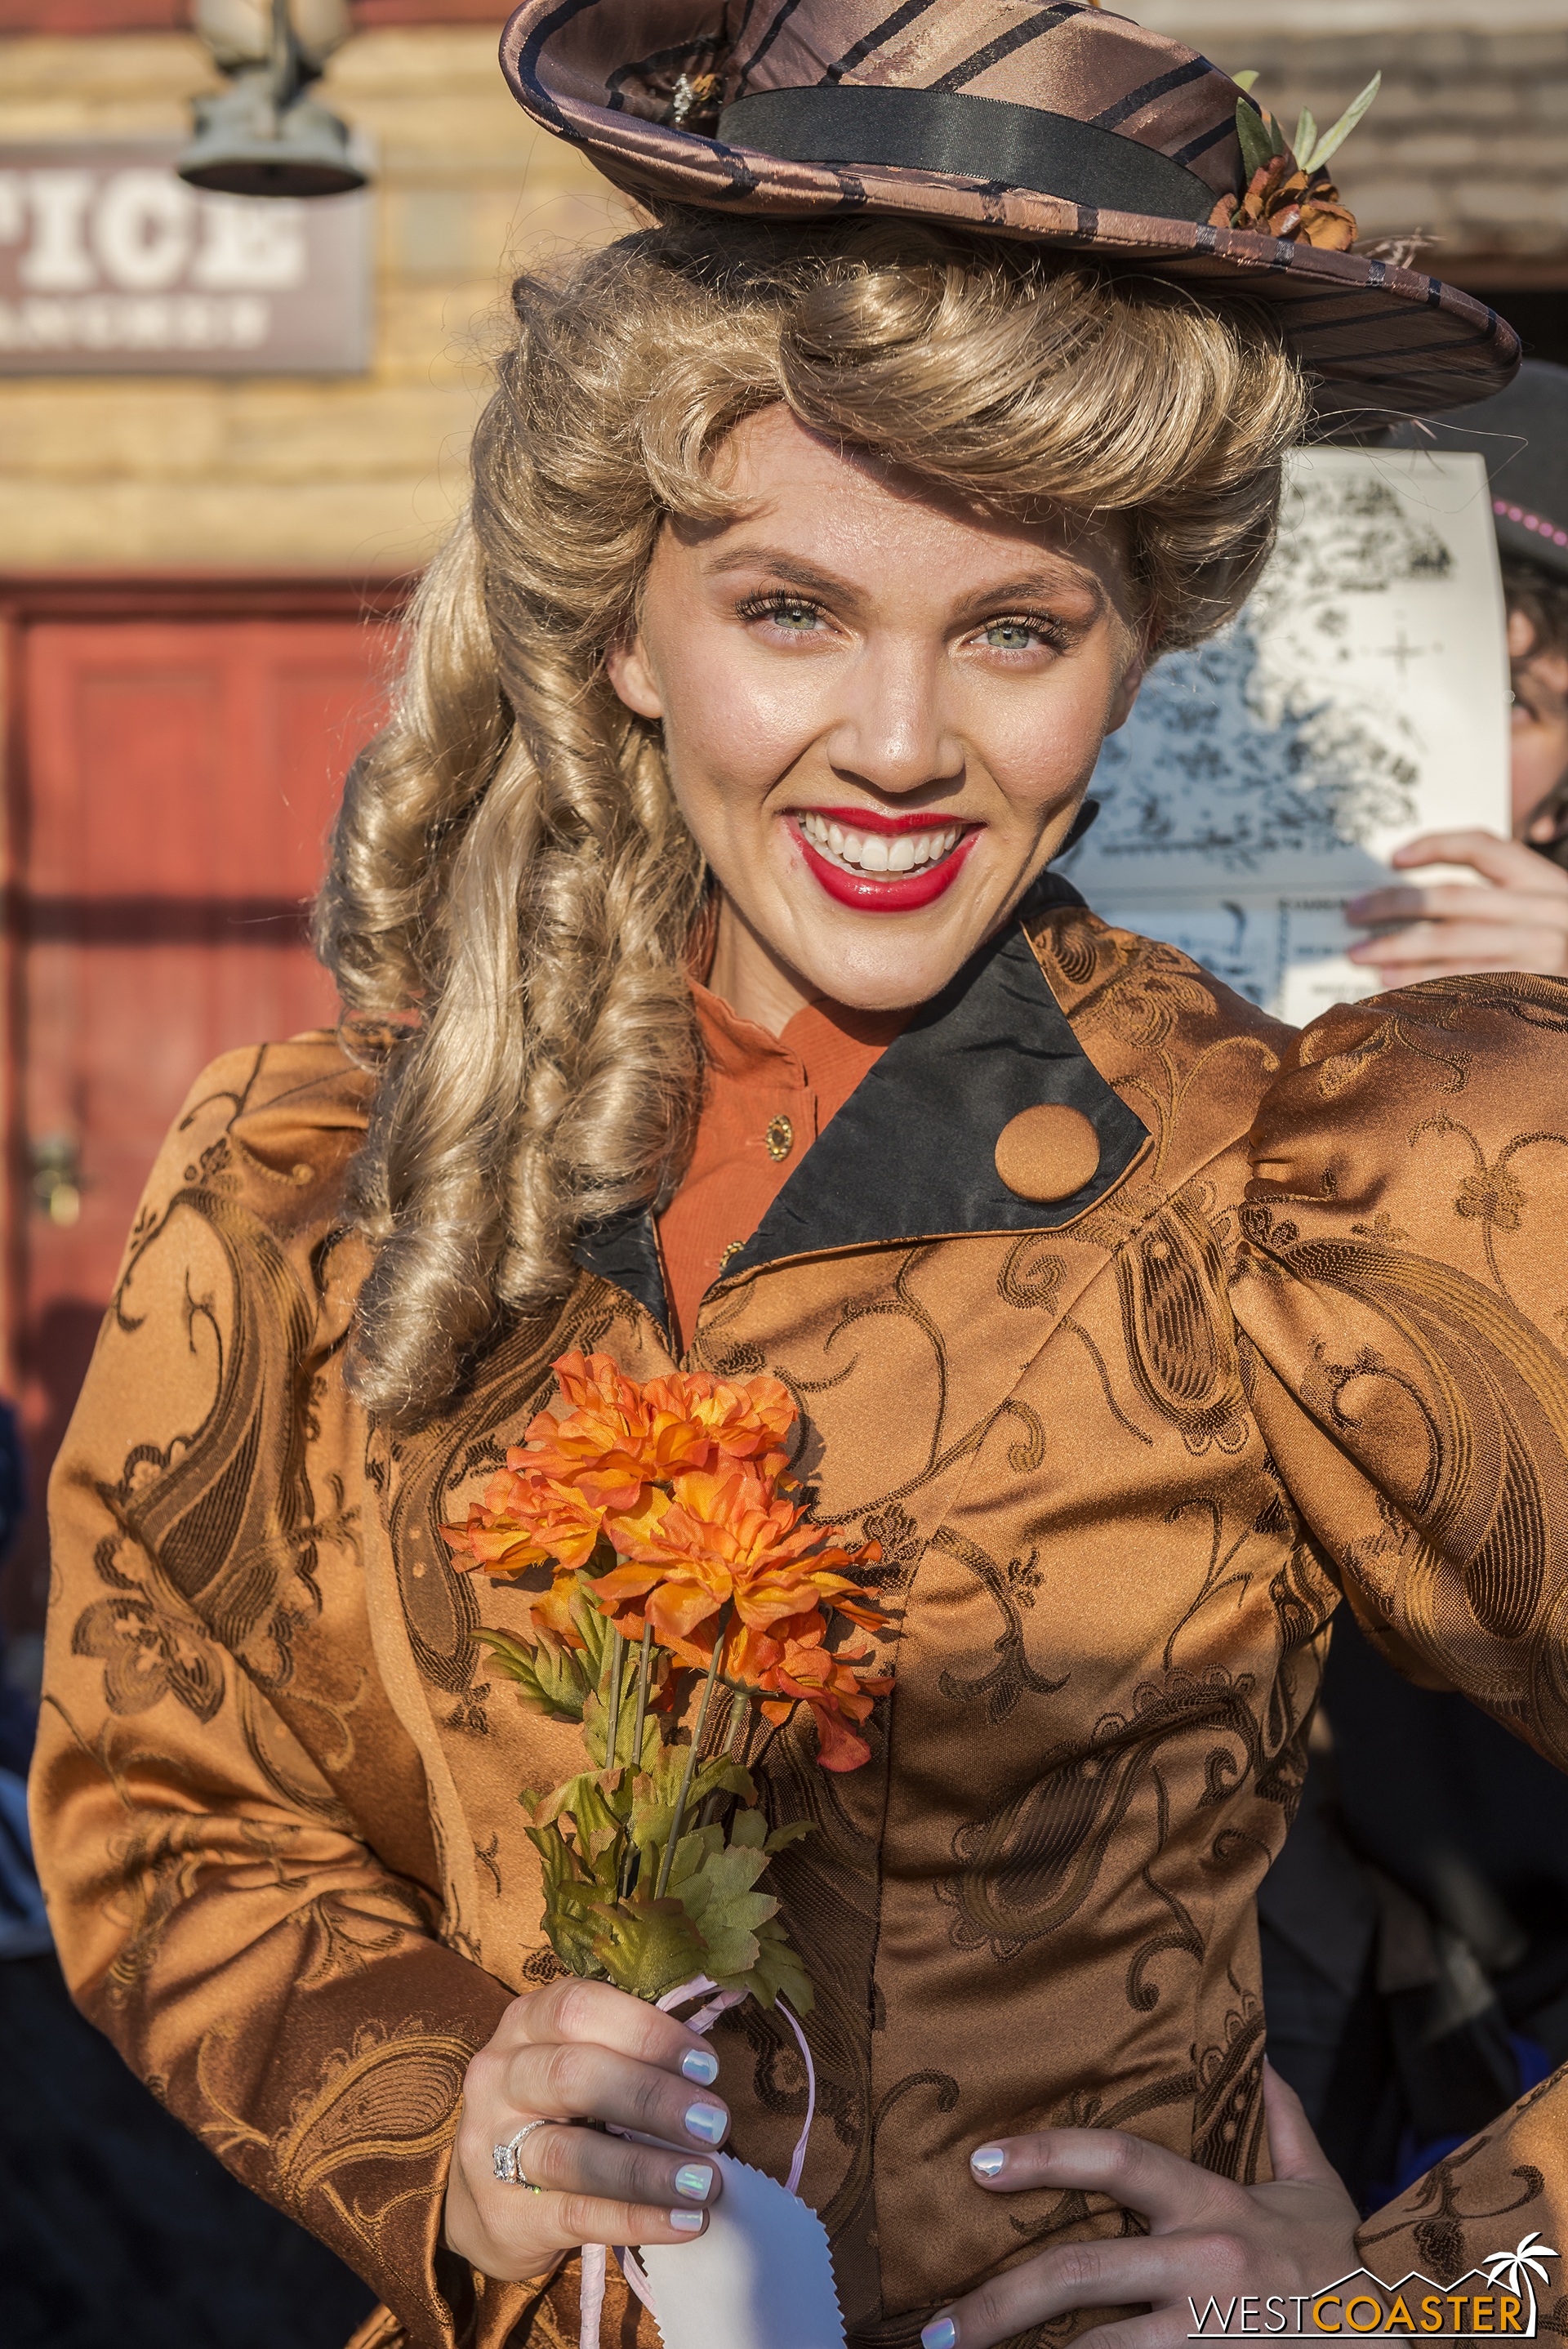 Calico Saloon owner, Goldie West, makes a special return to Calico just in time for the Founder's Day Hoedown.